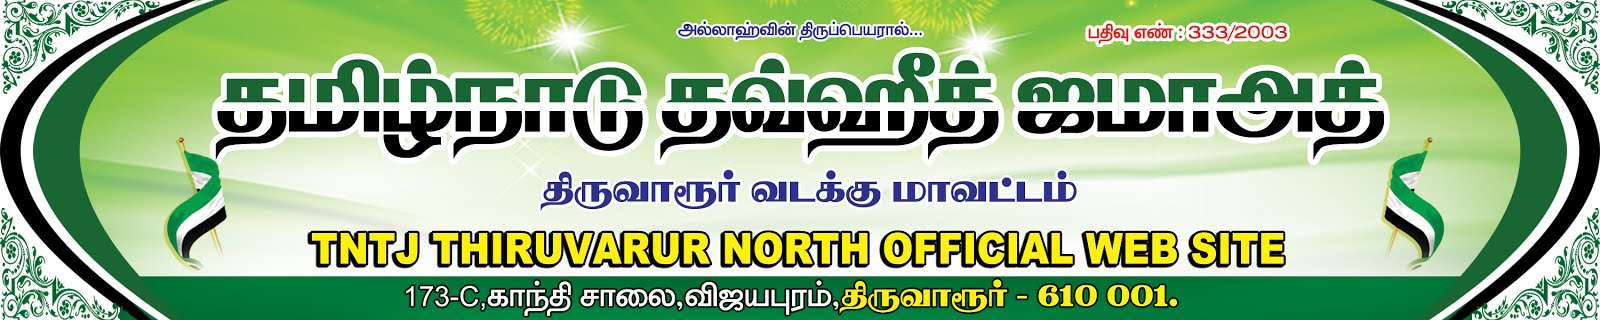 TNTJ Thiruvarur Header